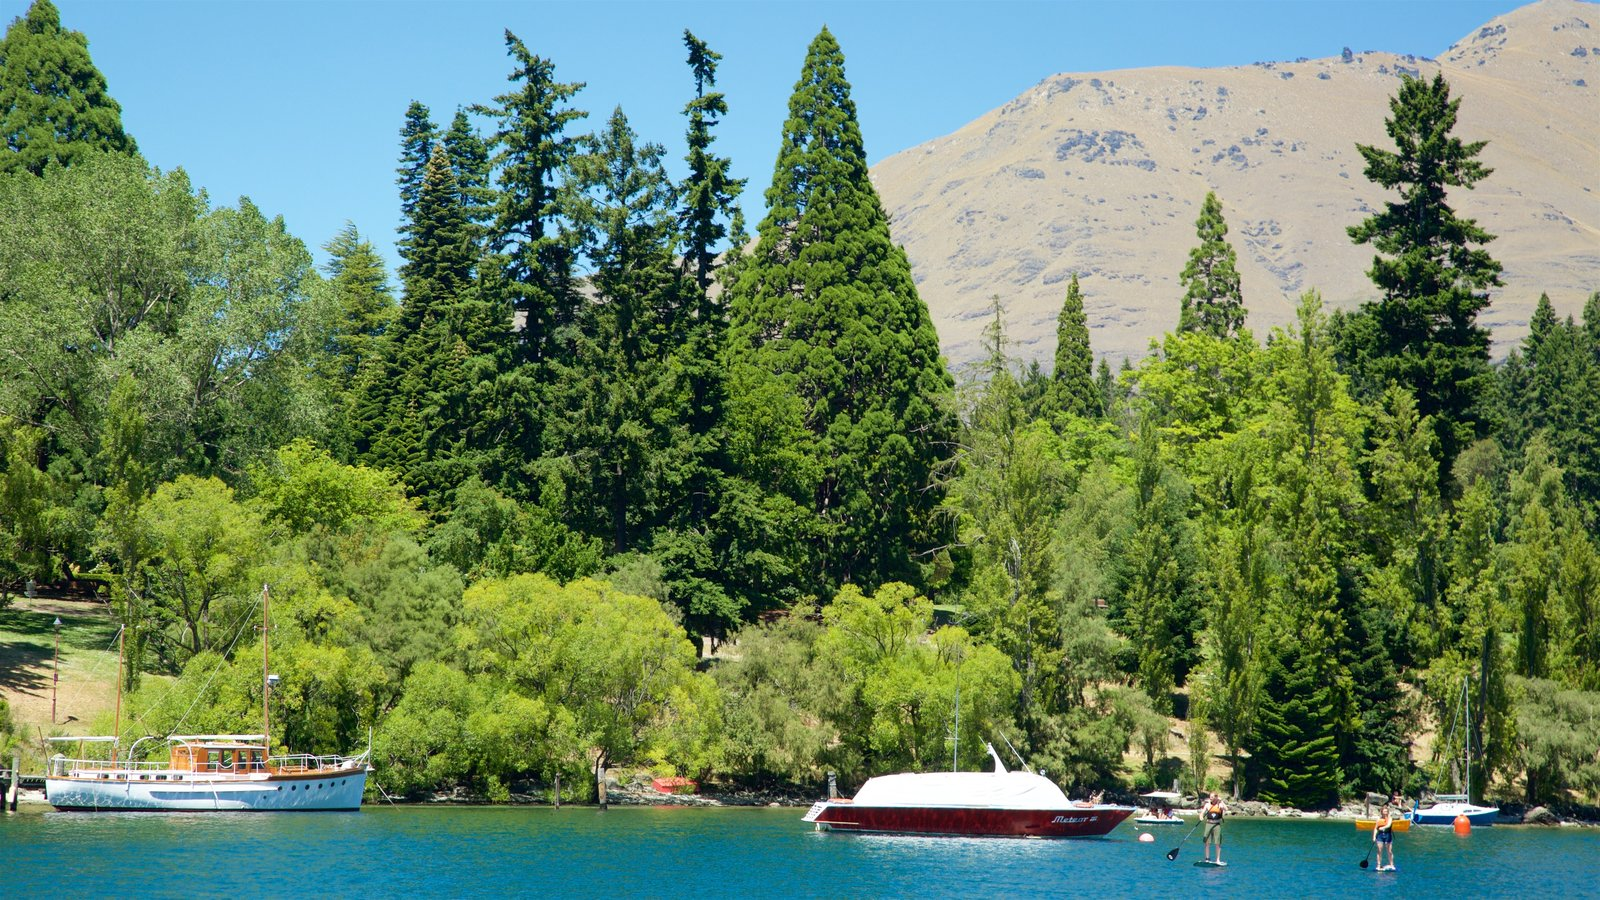 Queenstown Gardens showing watersports, a lake or waterhole and boating